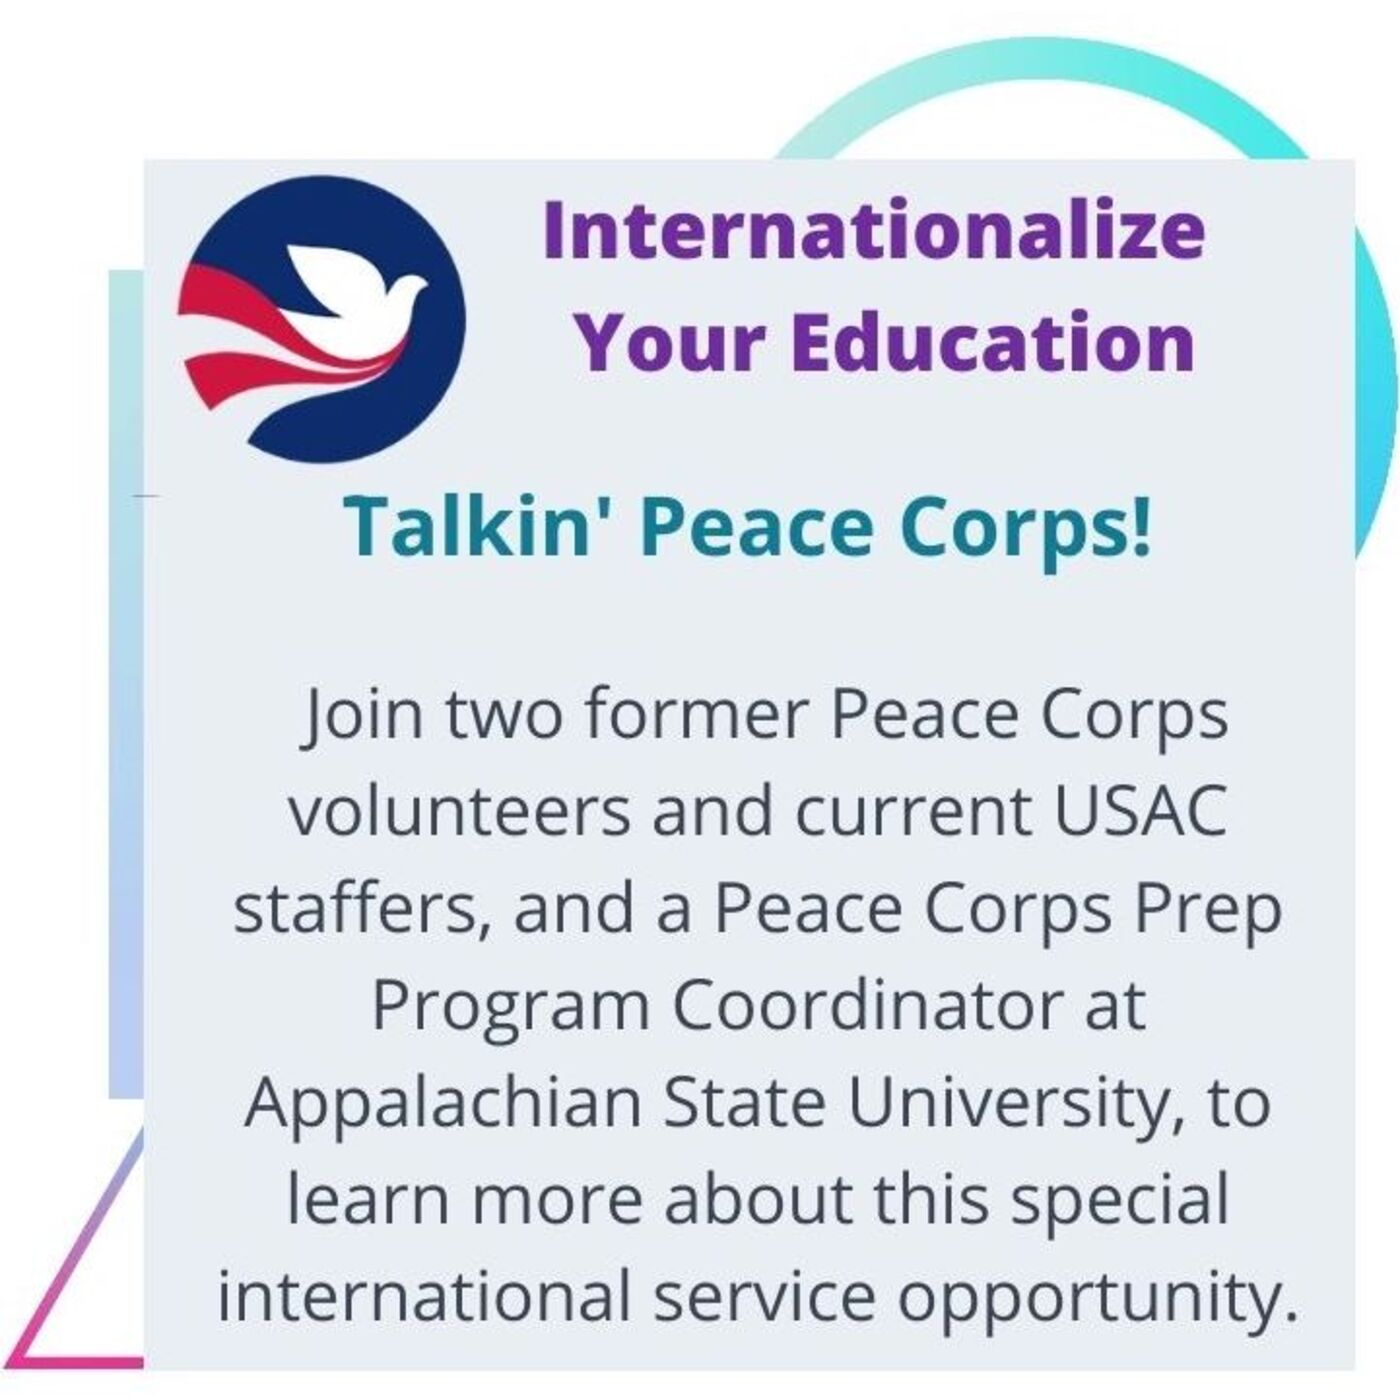 Season 2 - #5: Internationalize Your Education Through a Peace Corps Volunteer Experience